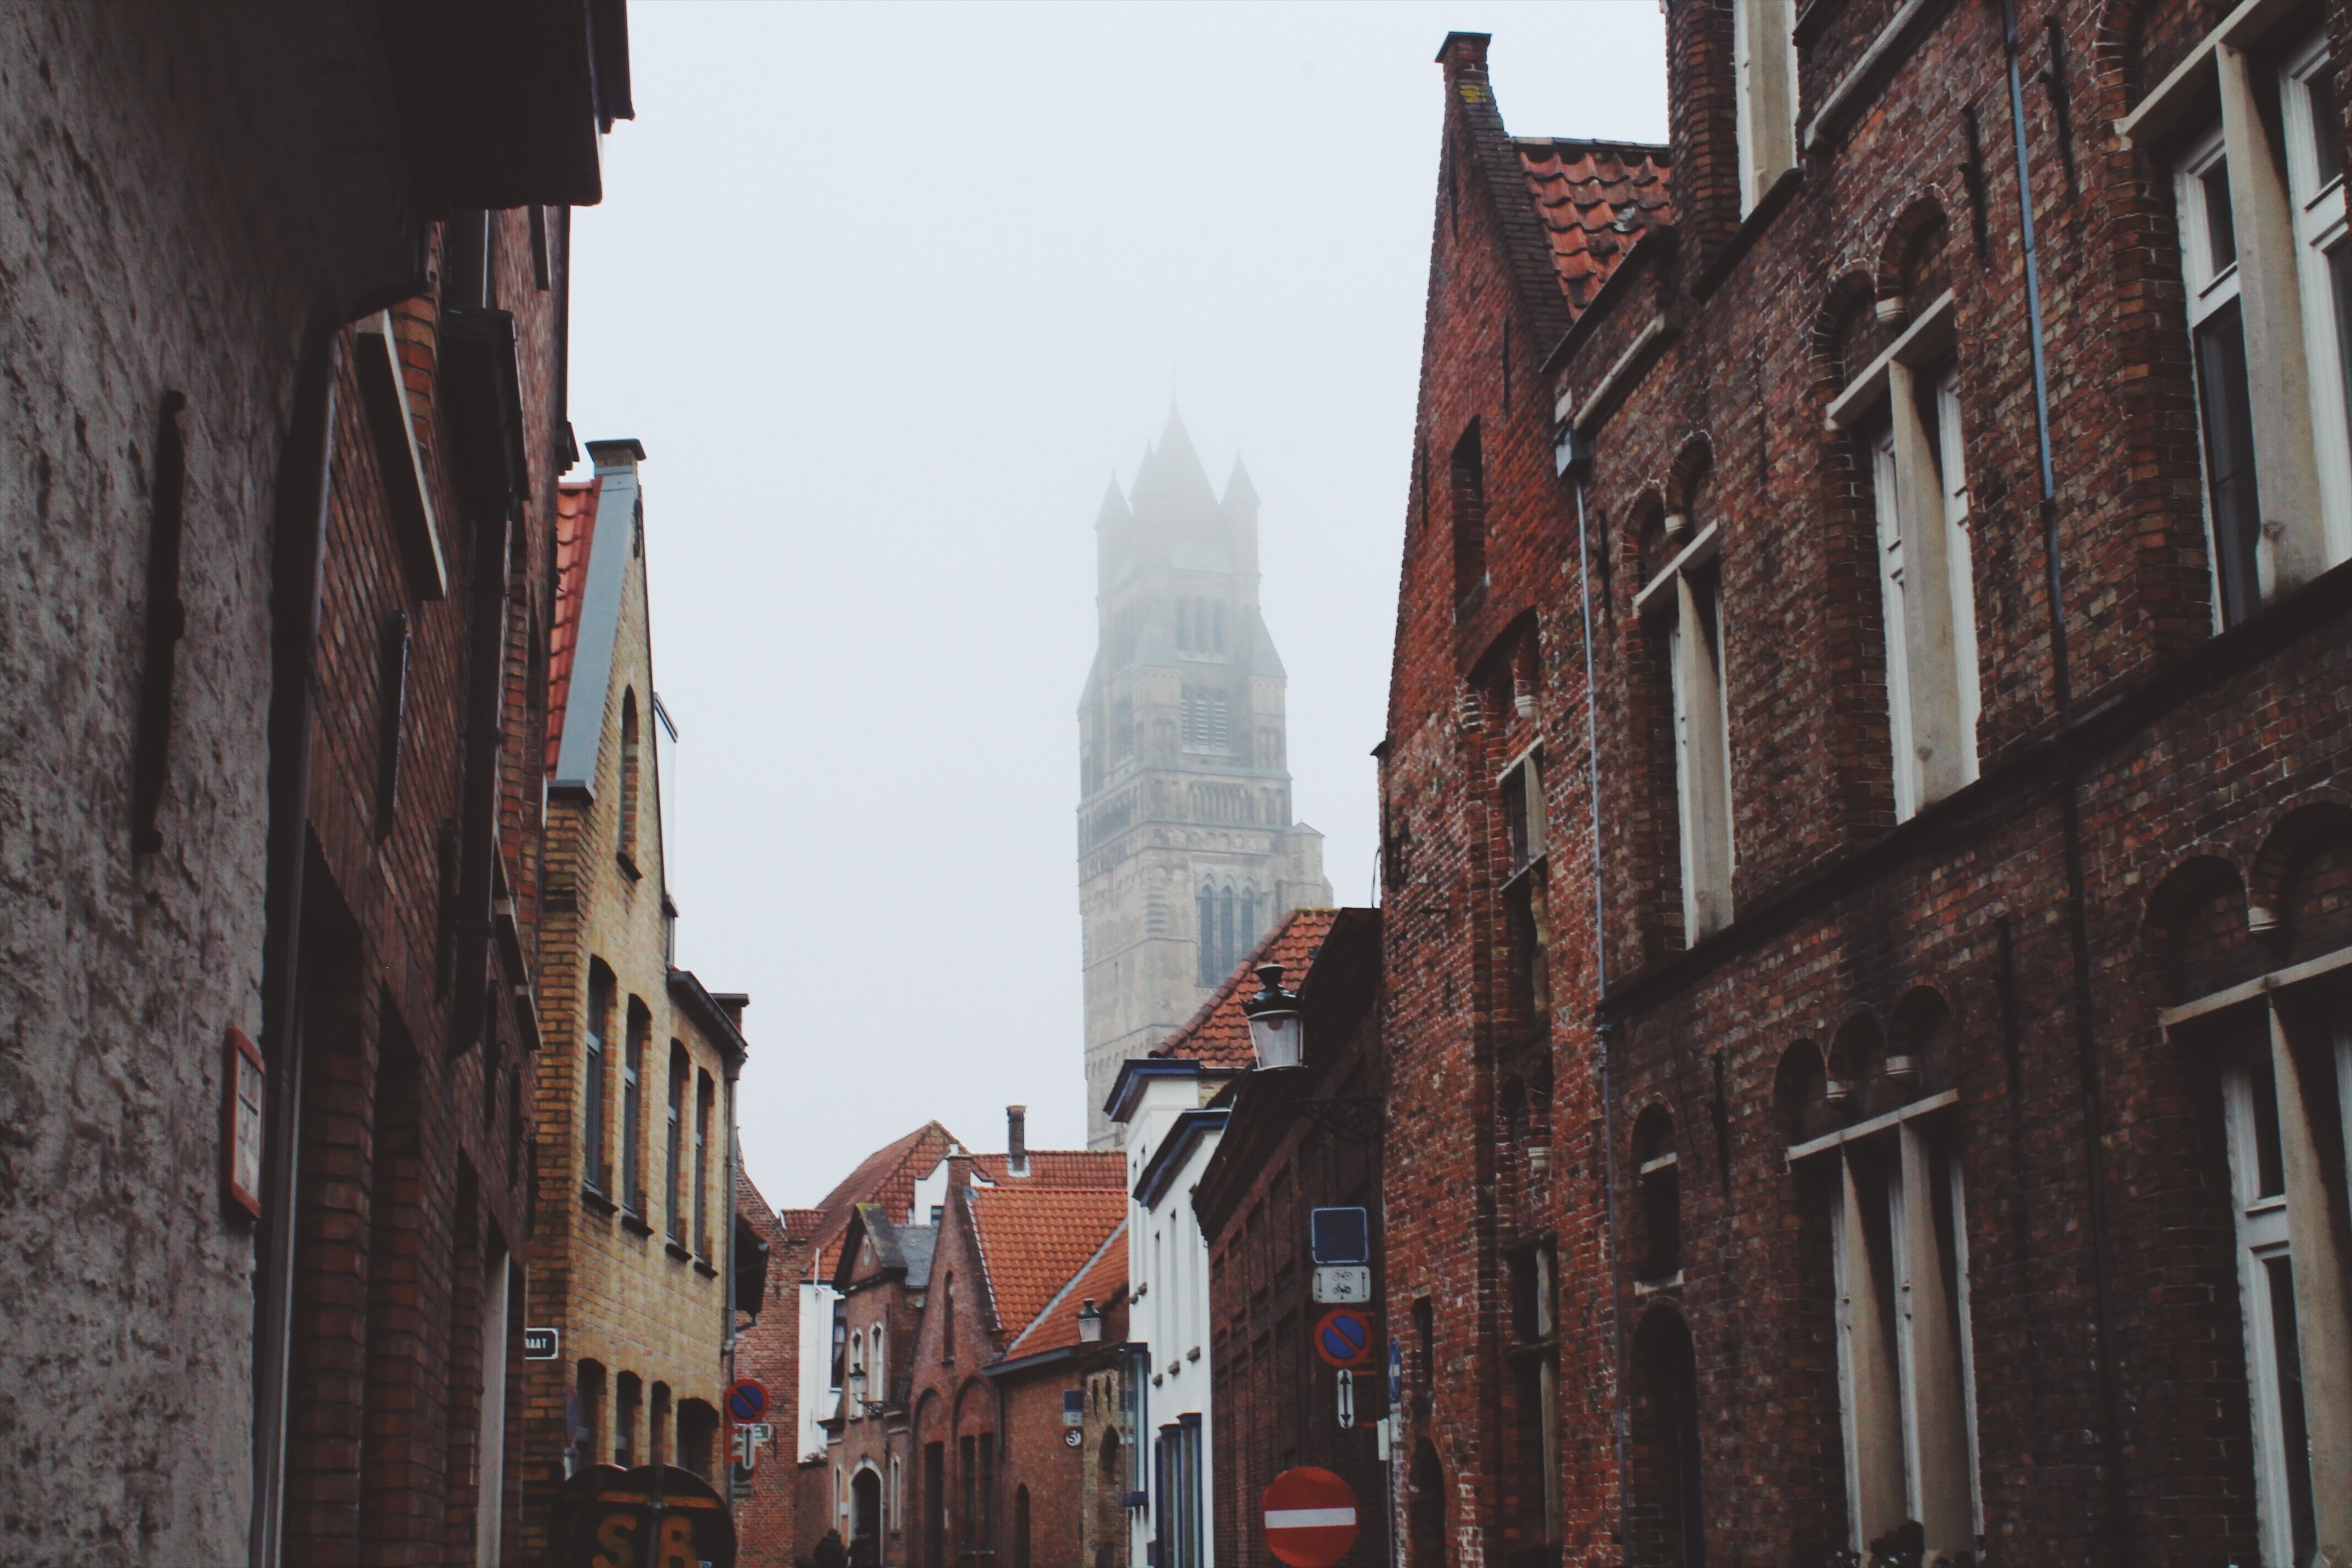 A street in Bruges with brick houses and a church covered in fog in the background